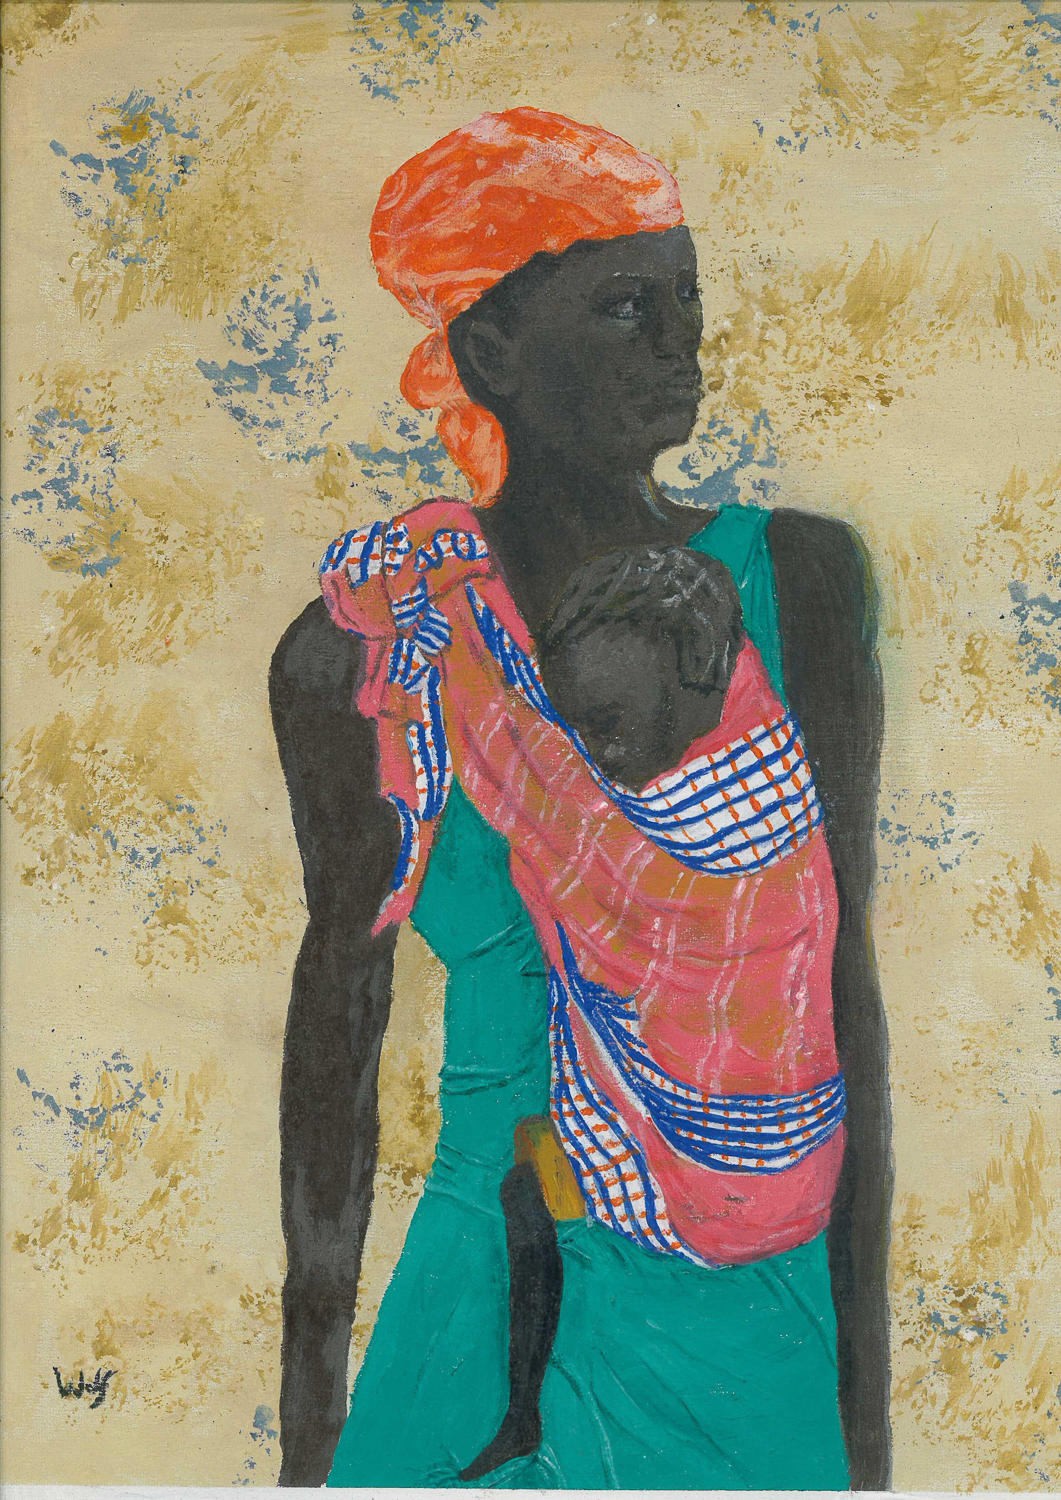 Colourful painting of woman carrying her baby in a wrap